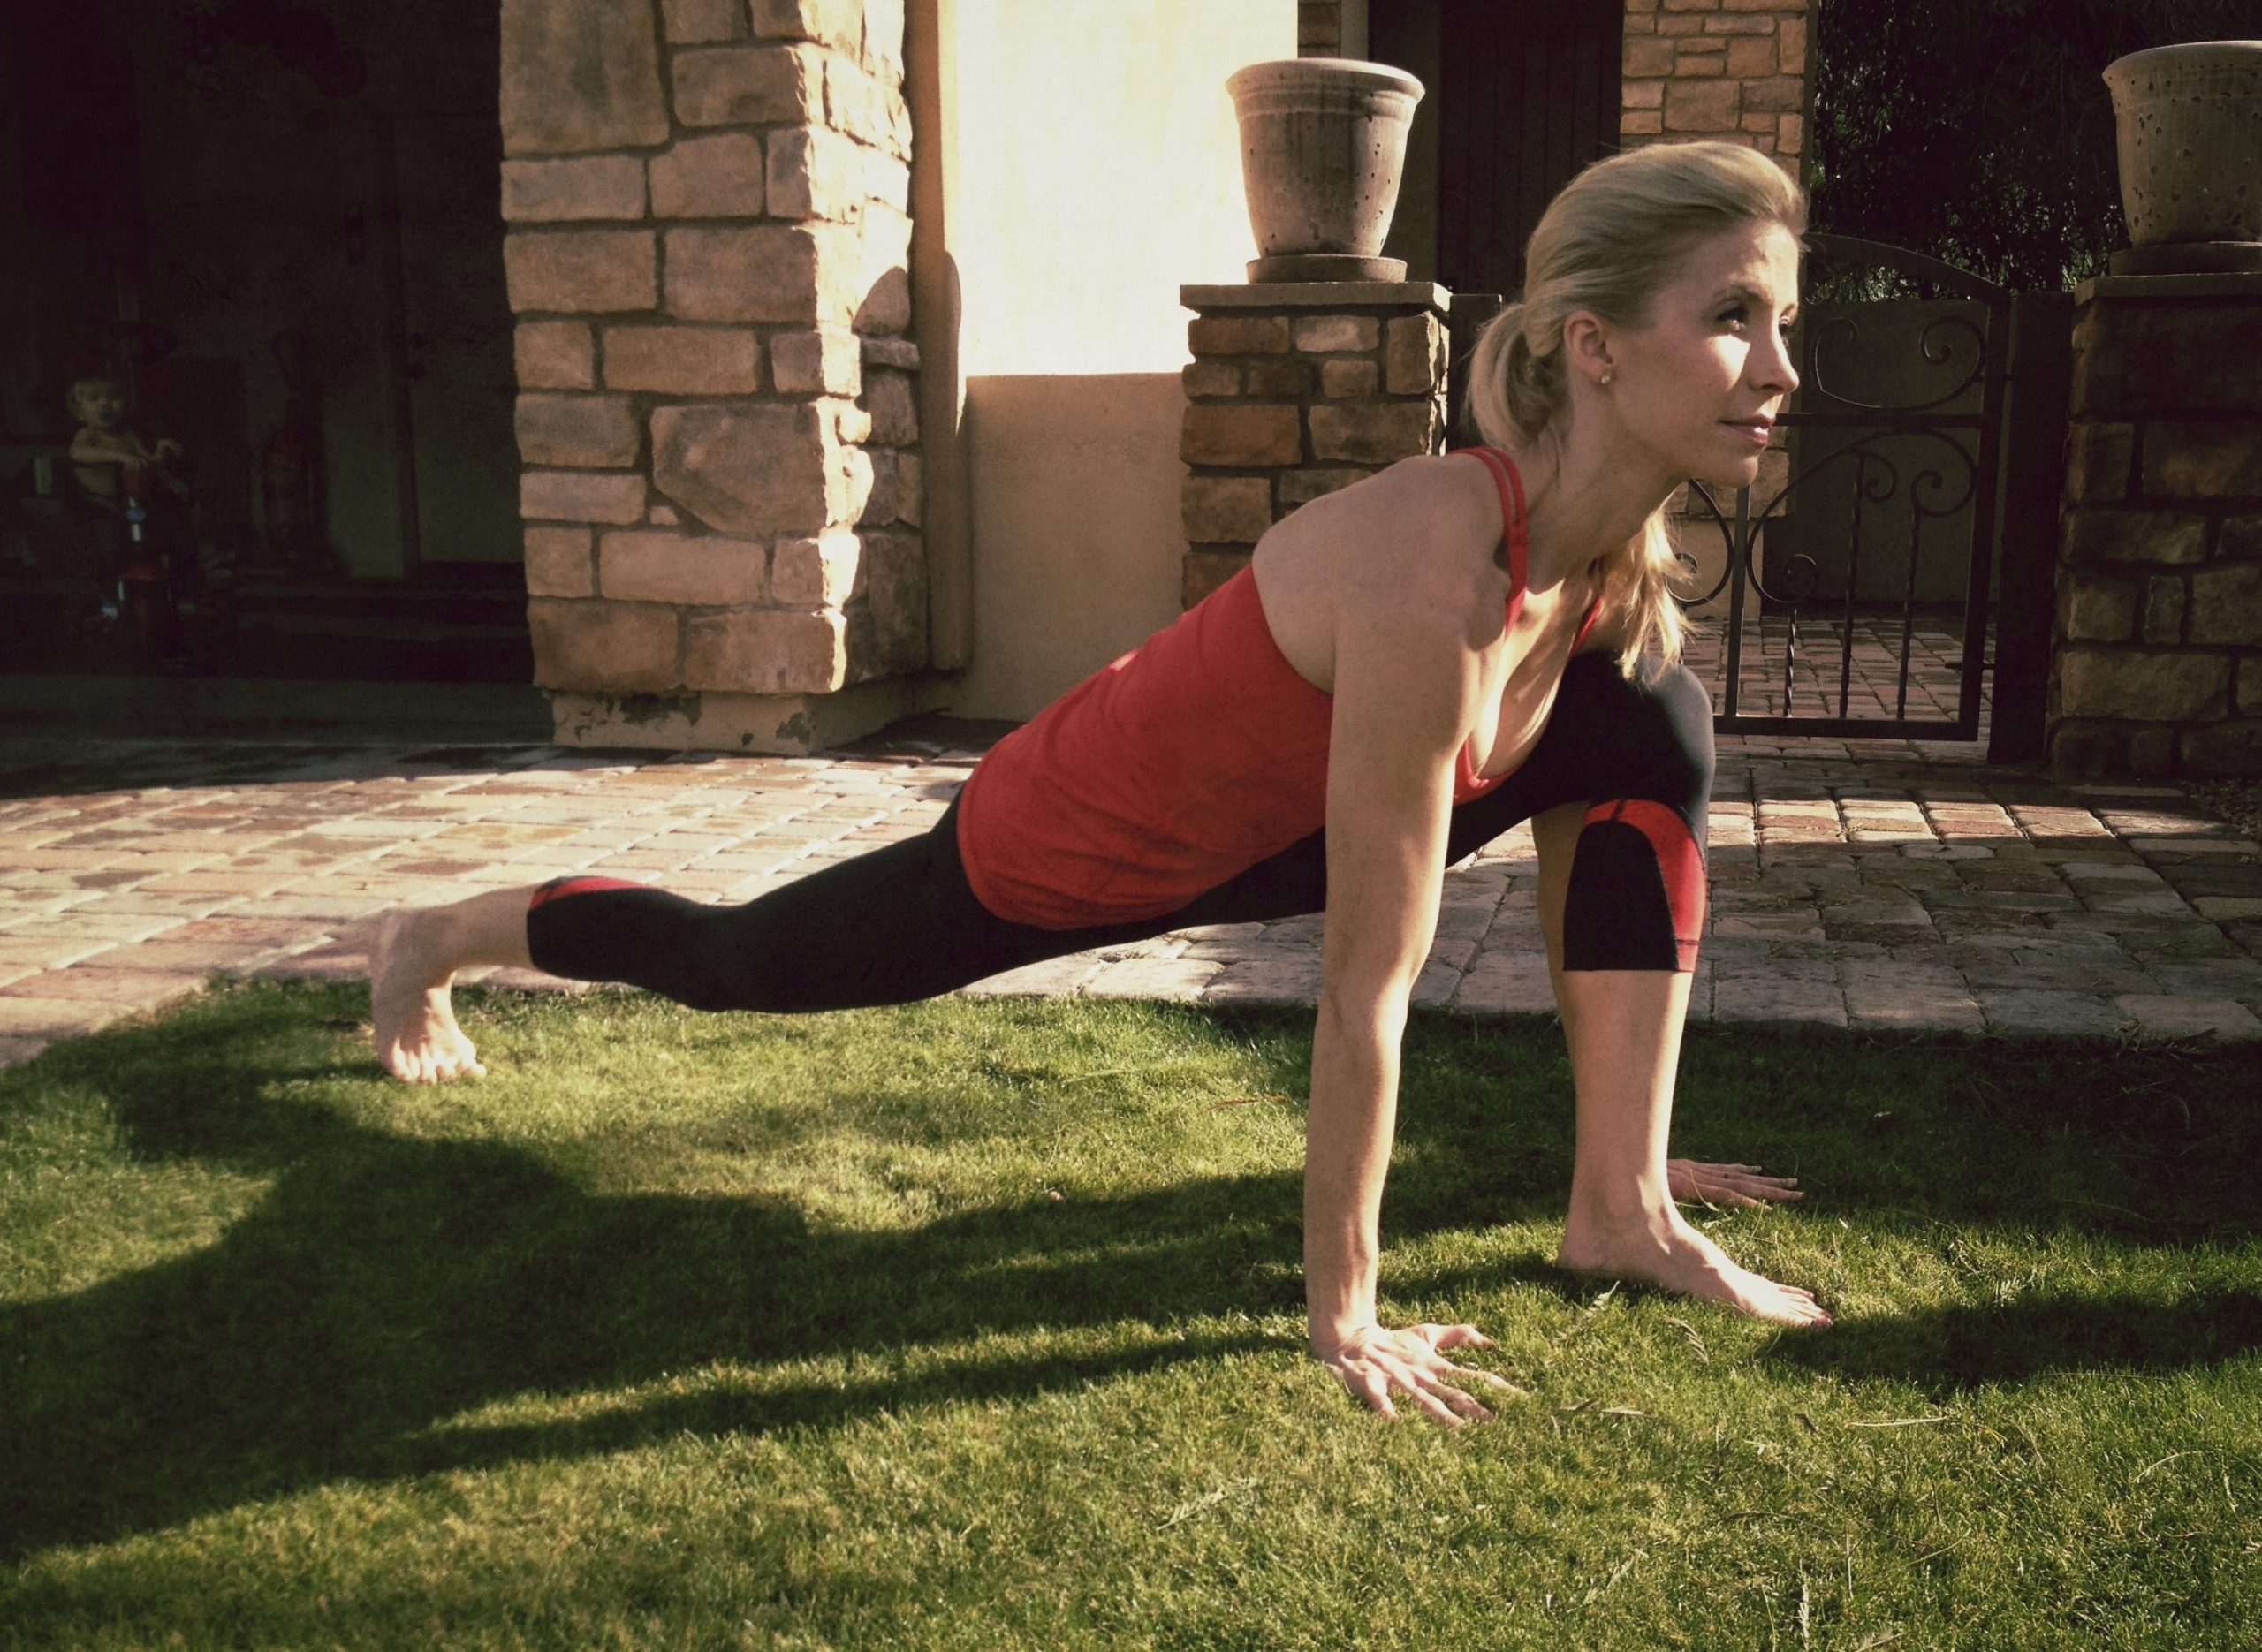 #YogaWorkout with #HeidiPowell Equestrain Yoga Pose - Learn more at https://heidipowell.net/305